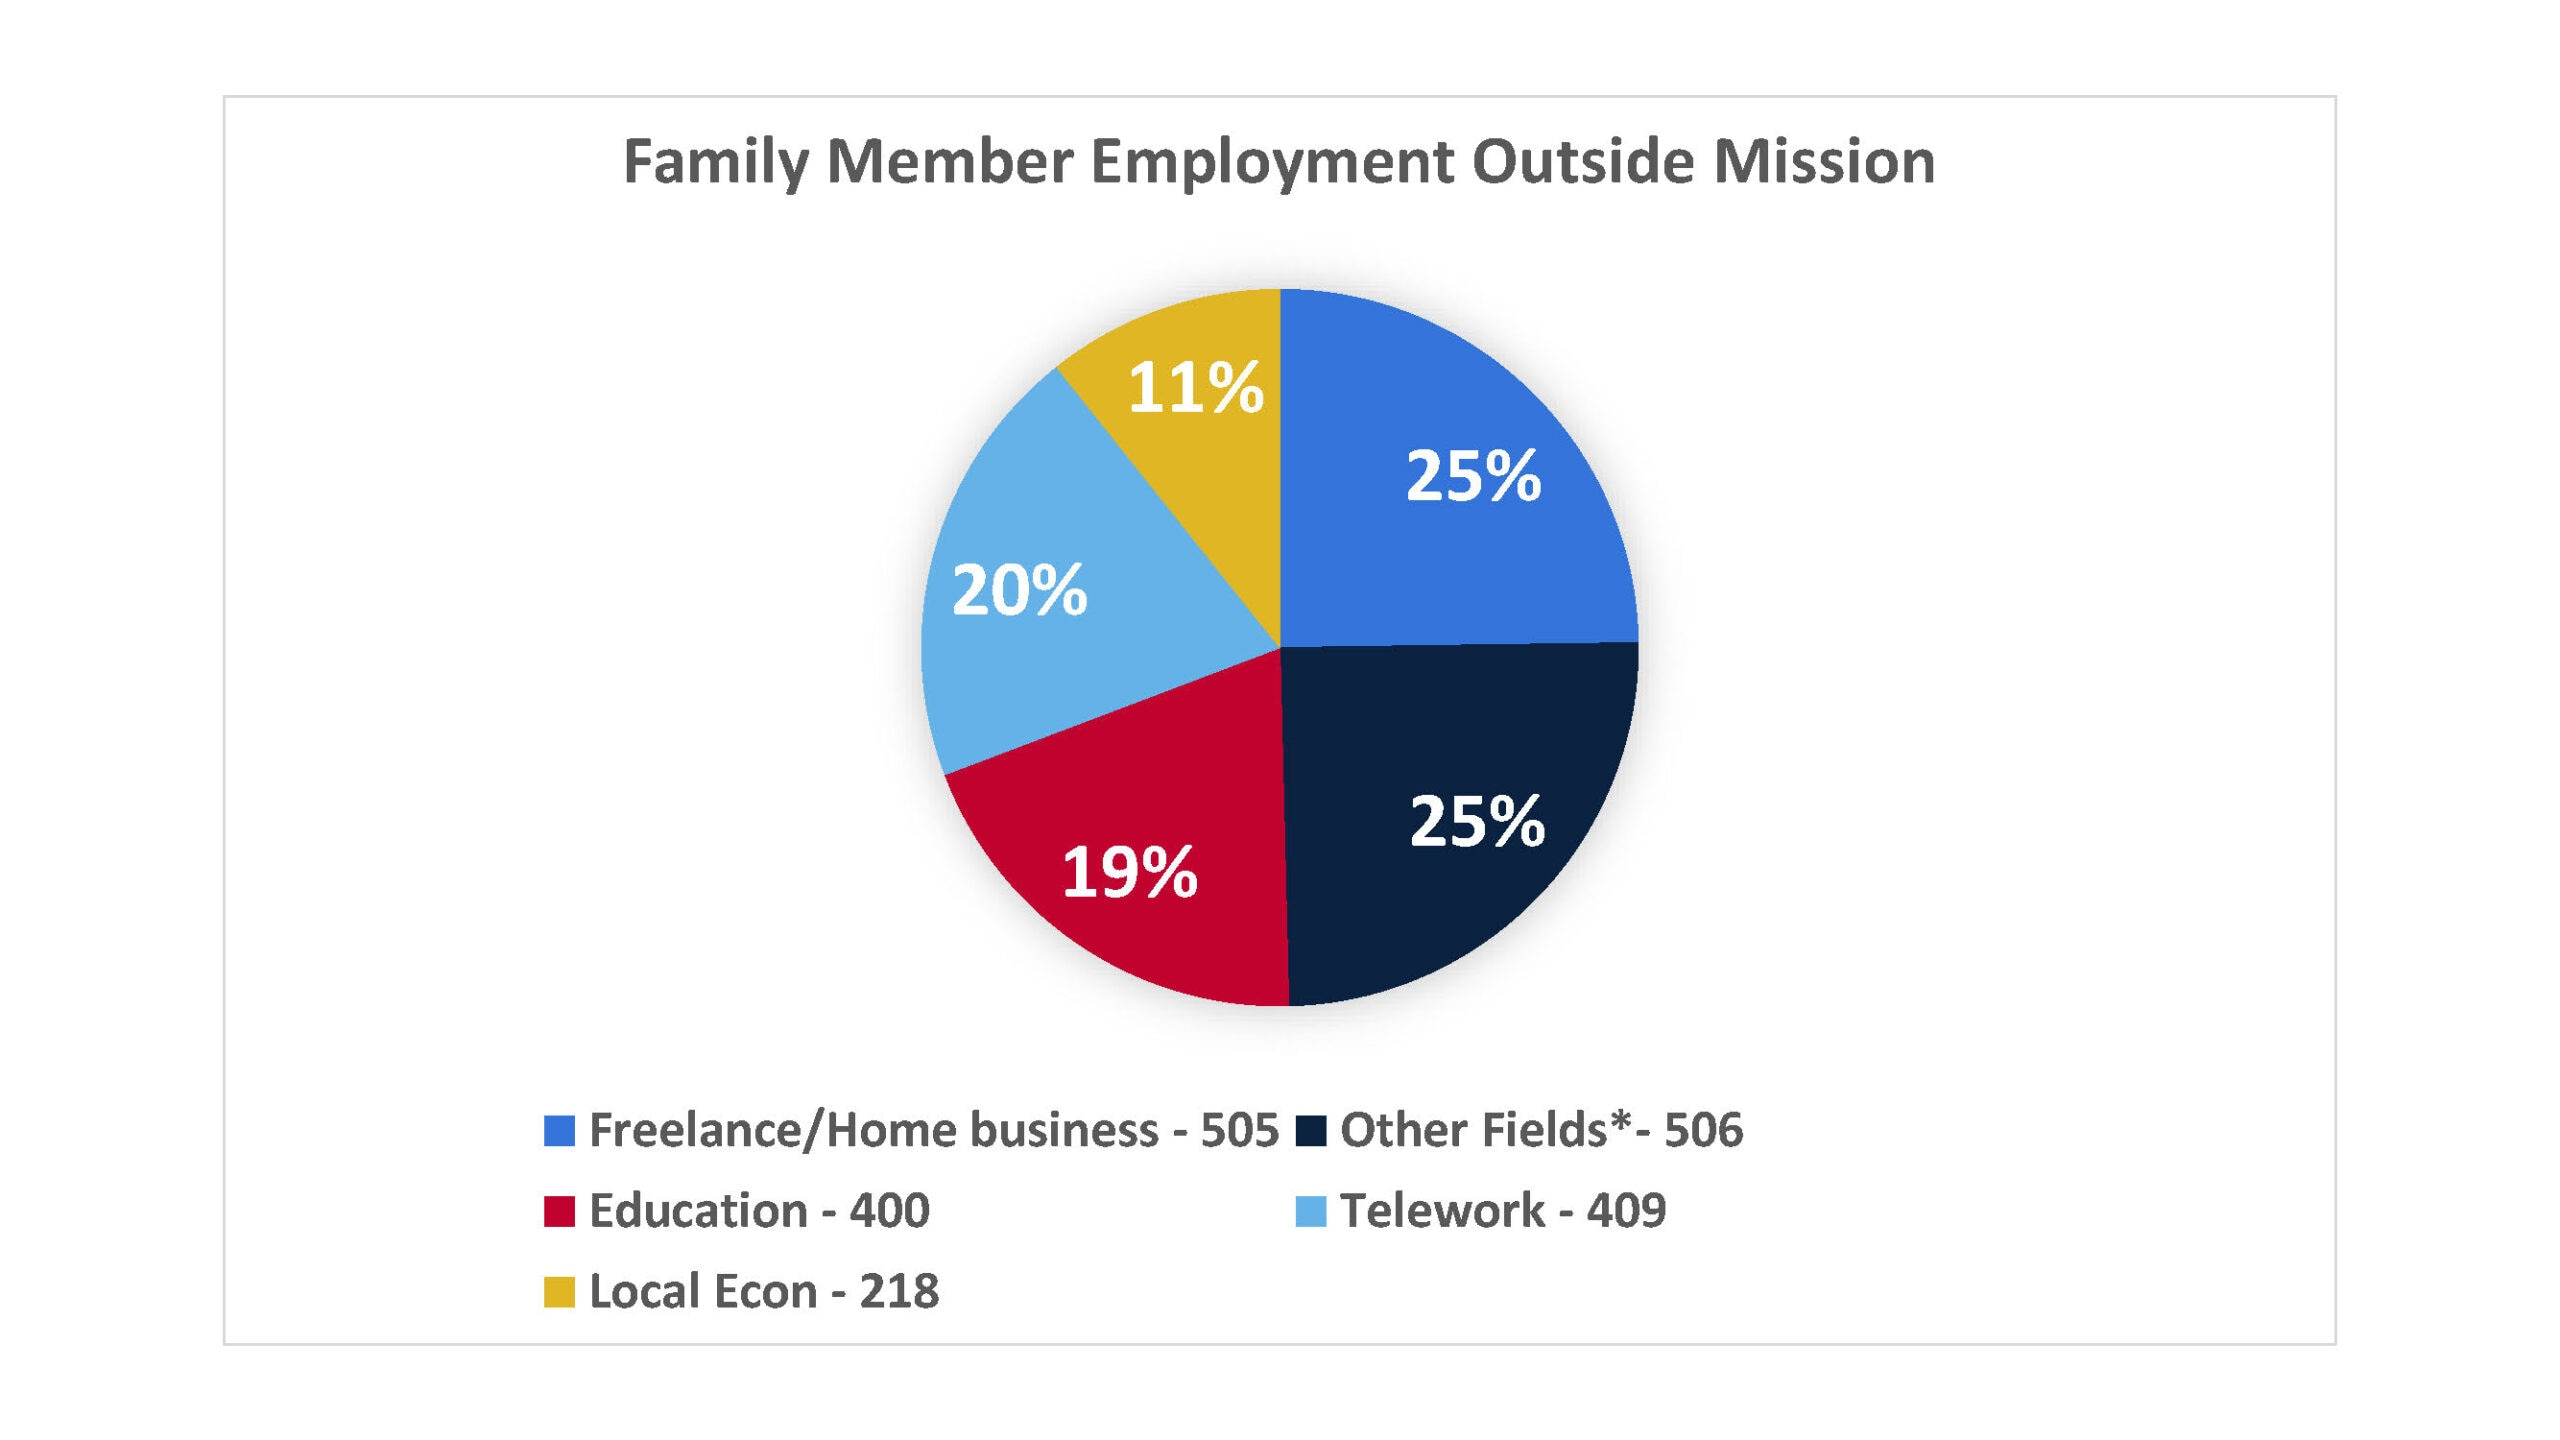 Family Member Employment Outside the Mission